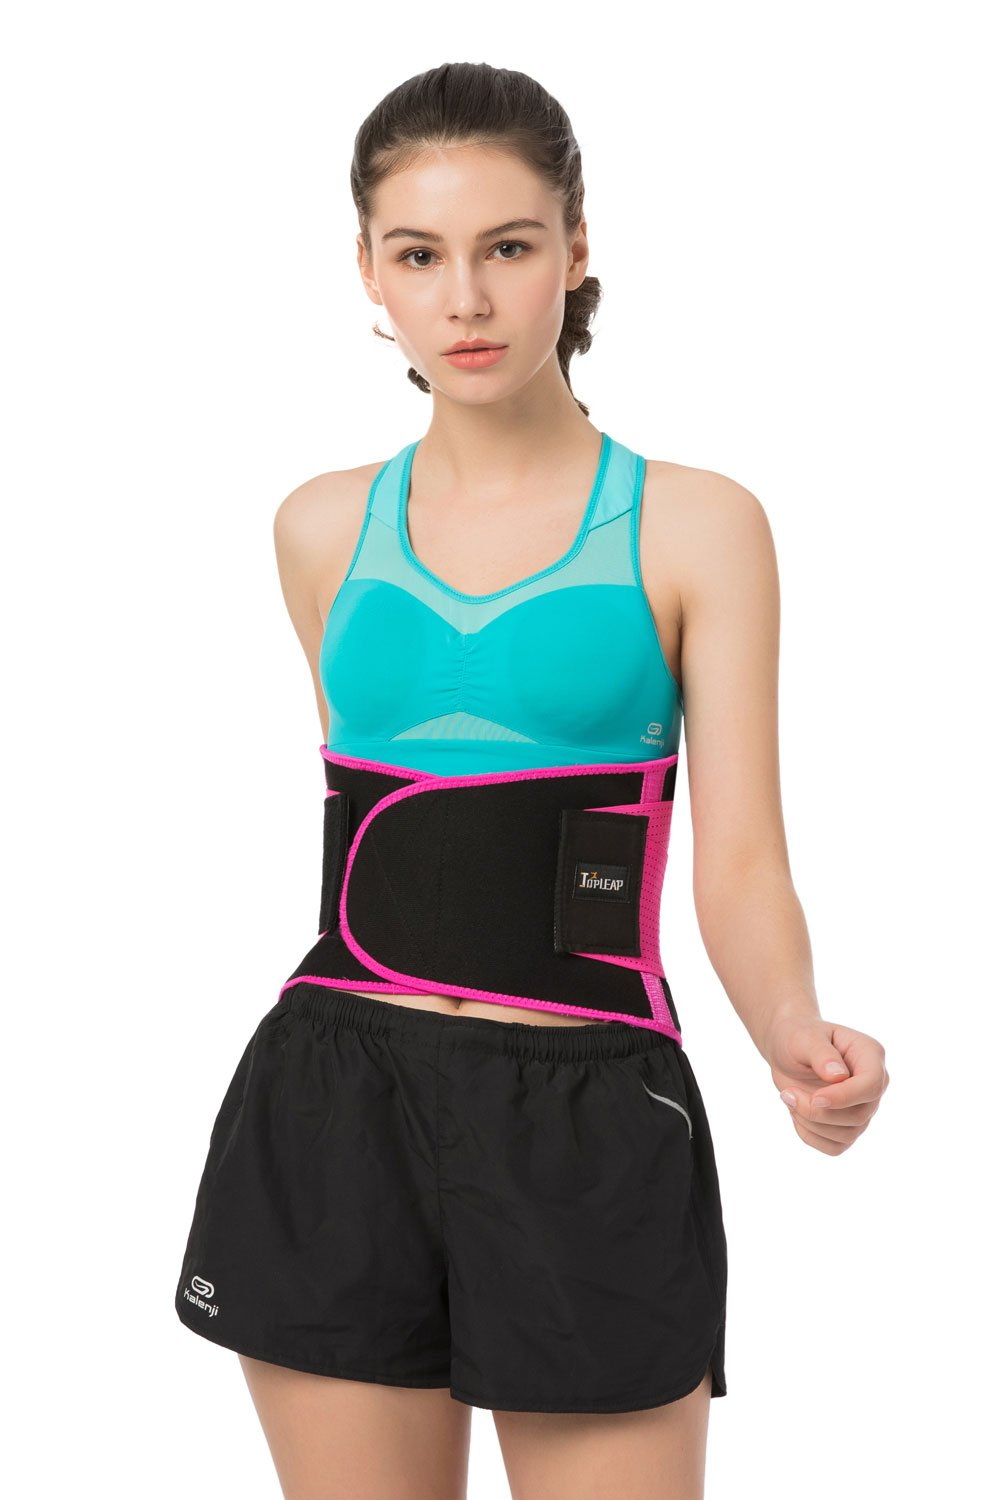 TOPLEAP Lower Back Brace Lumbar Support Belt for Women Men with Breathable Mesh and Dual Adjustable Straps Relieve Low Back Pain